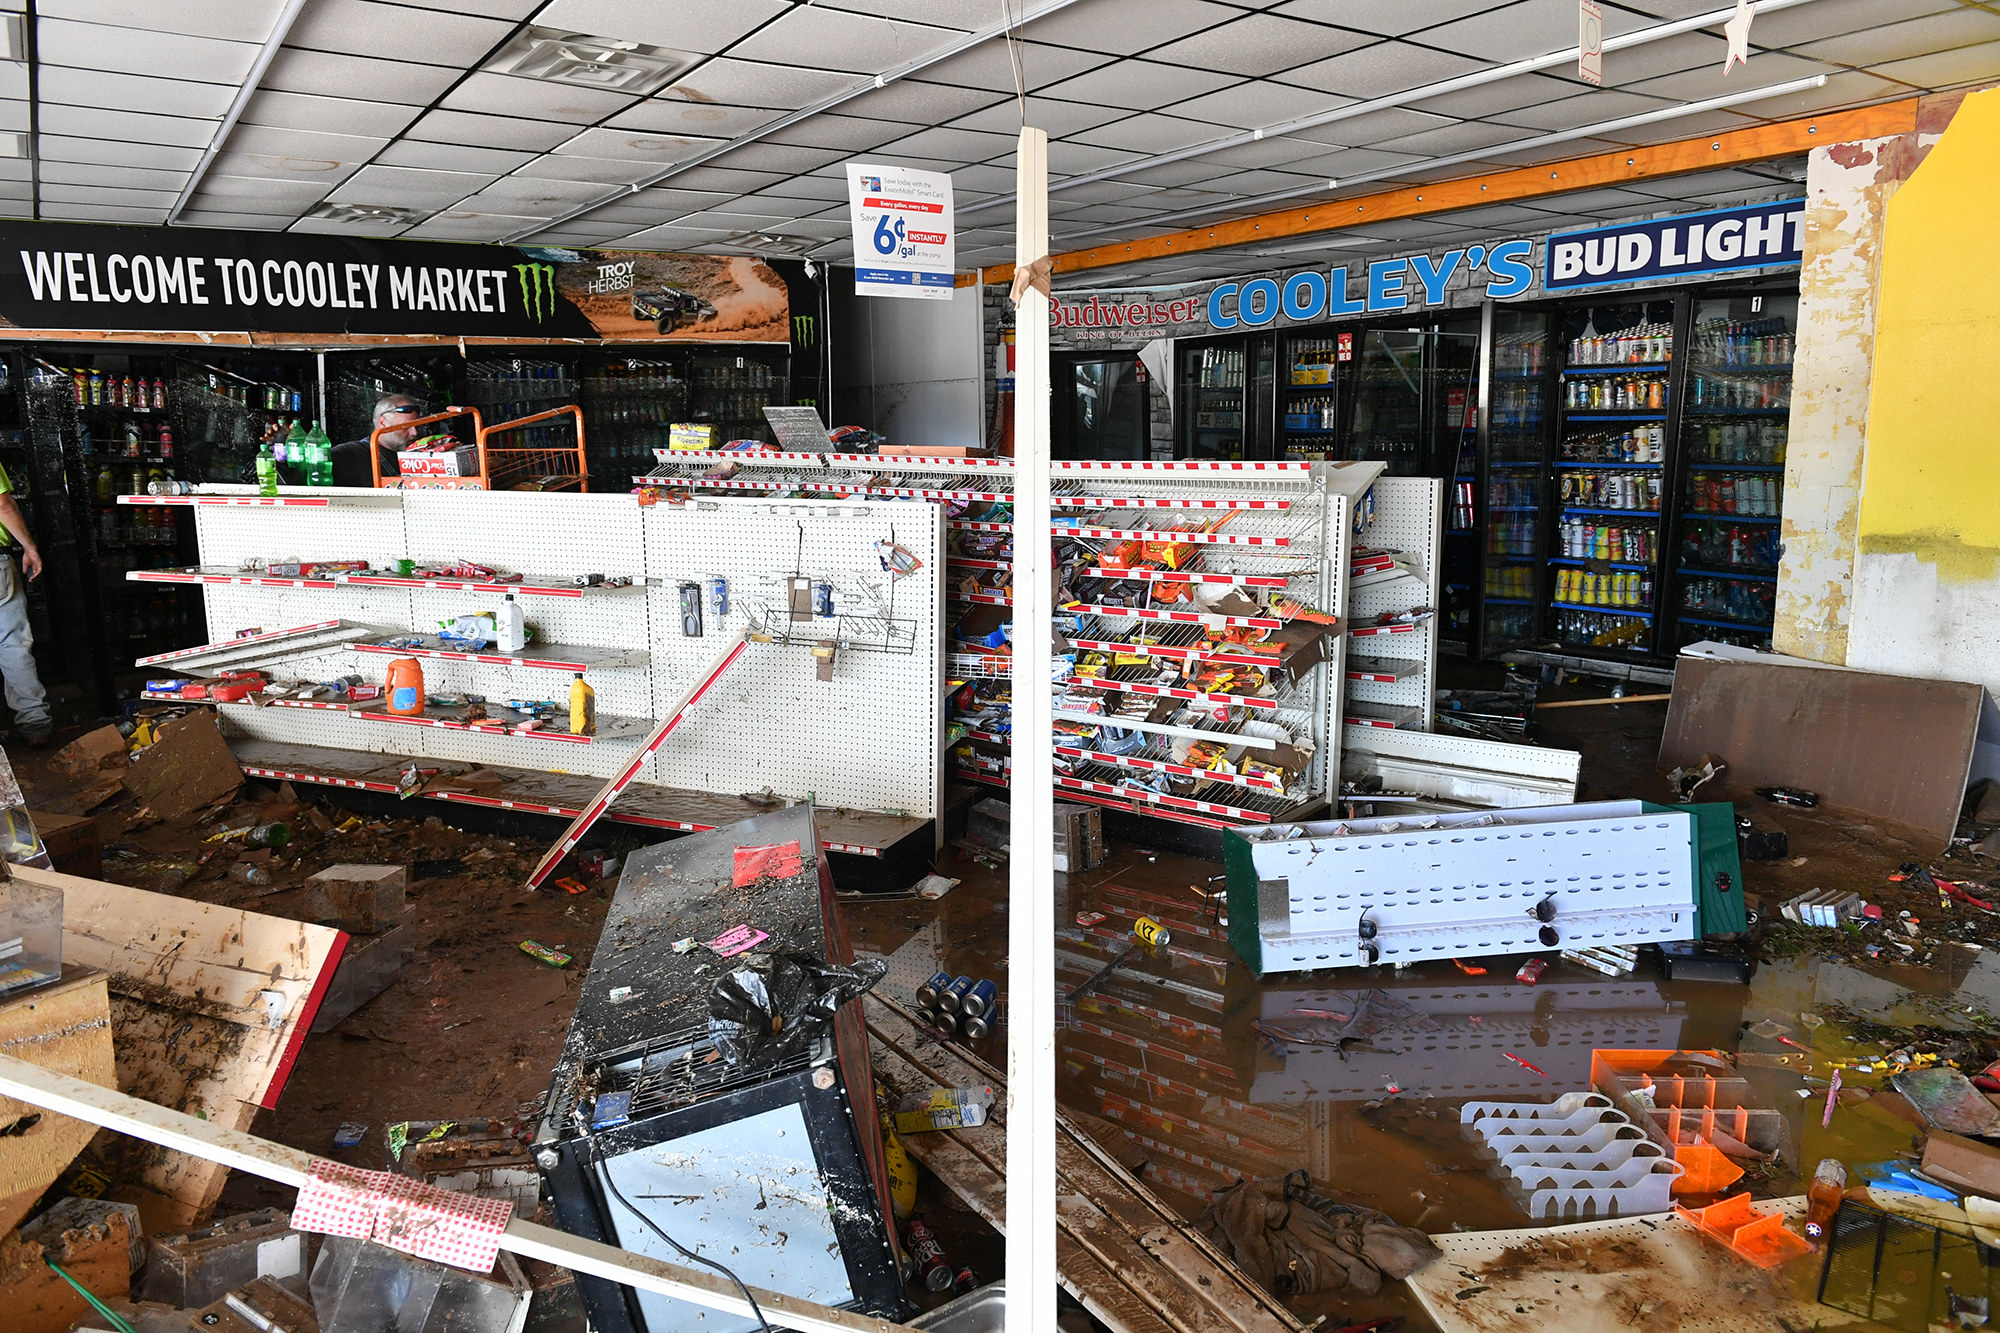 Aisles of candy and snacks are bare and toppled over in a flooded convenience store